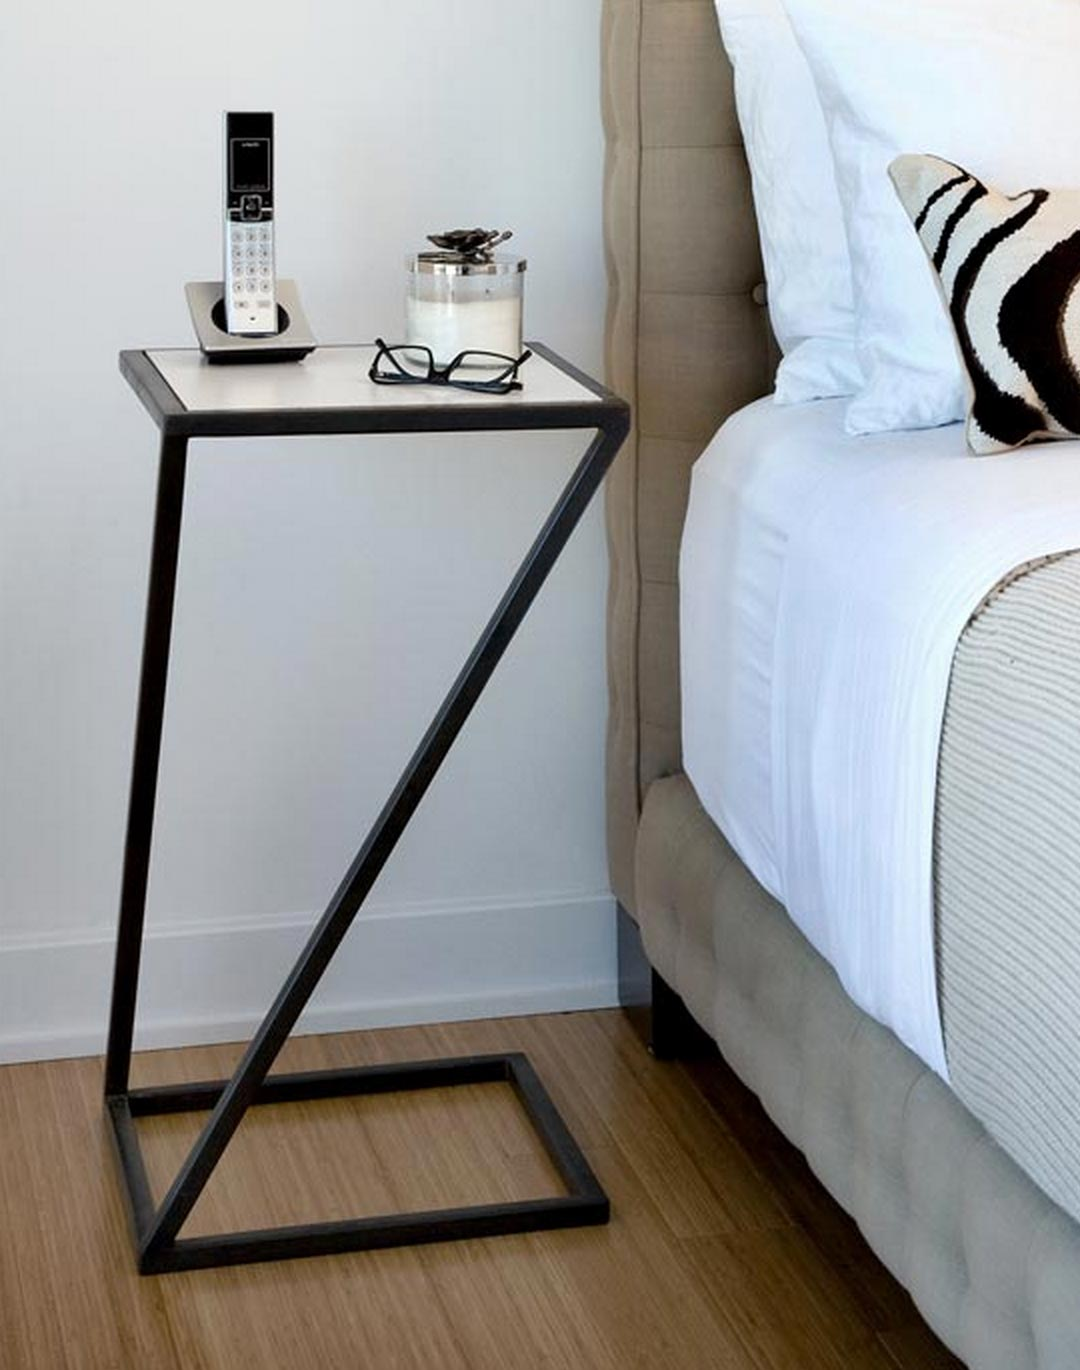 CONNECT side table from FAKTURA